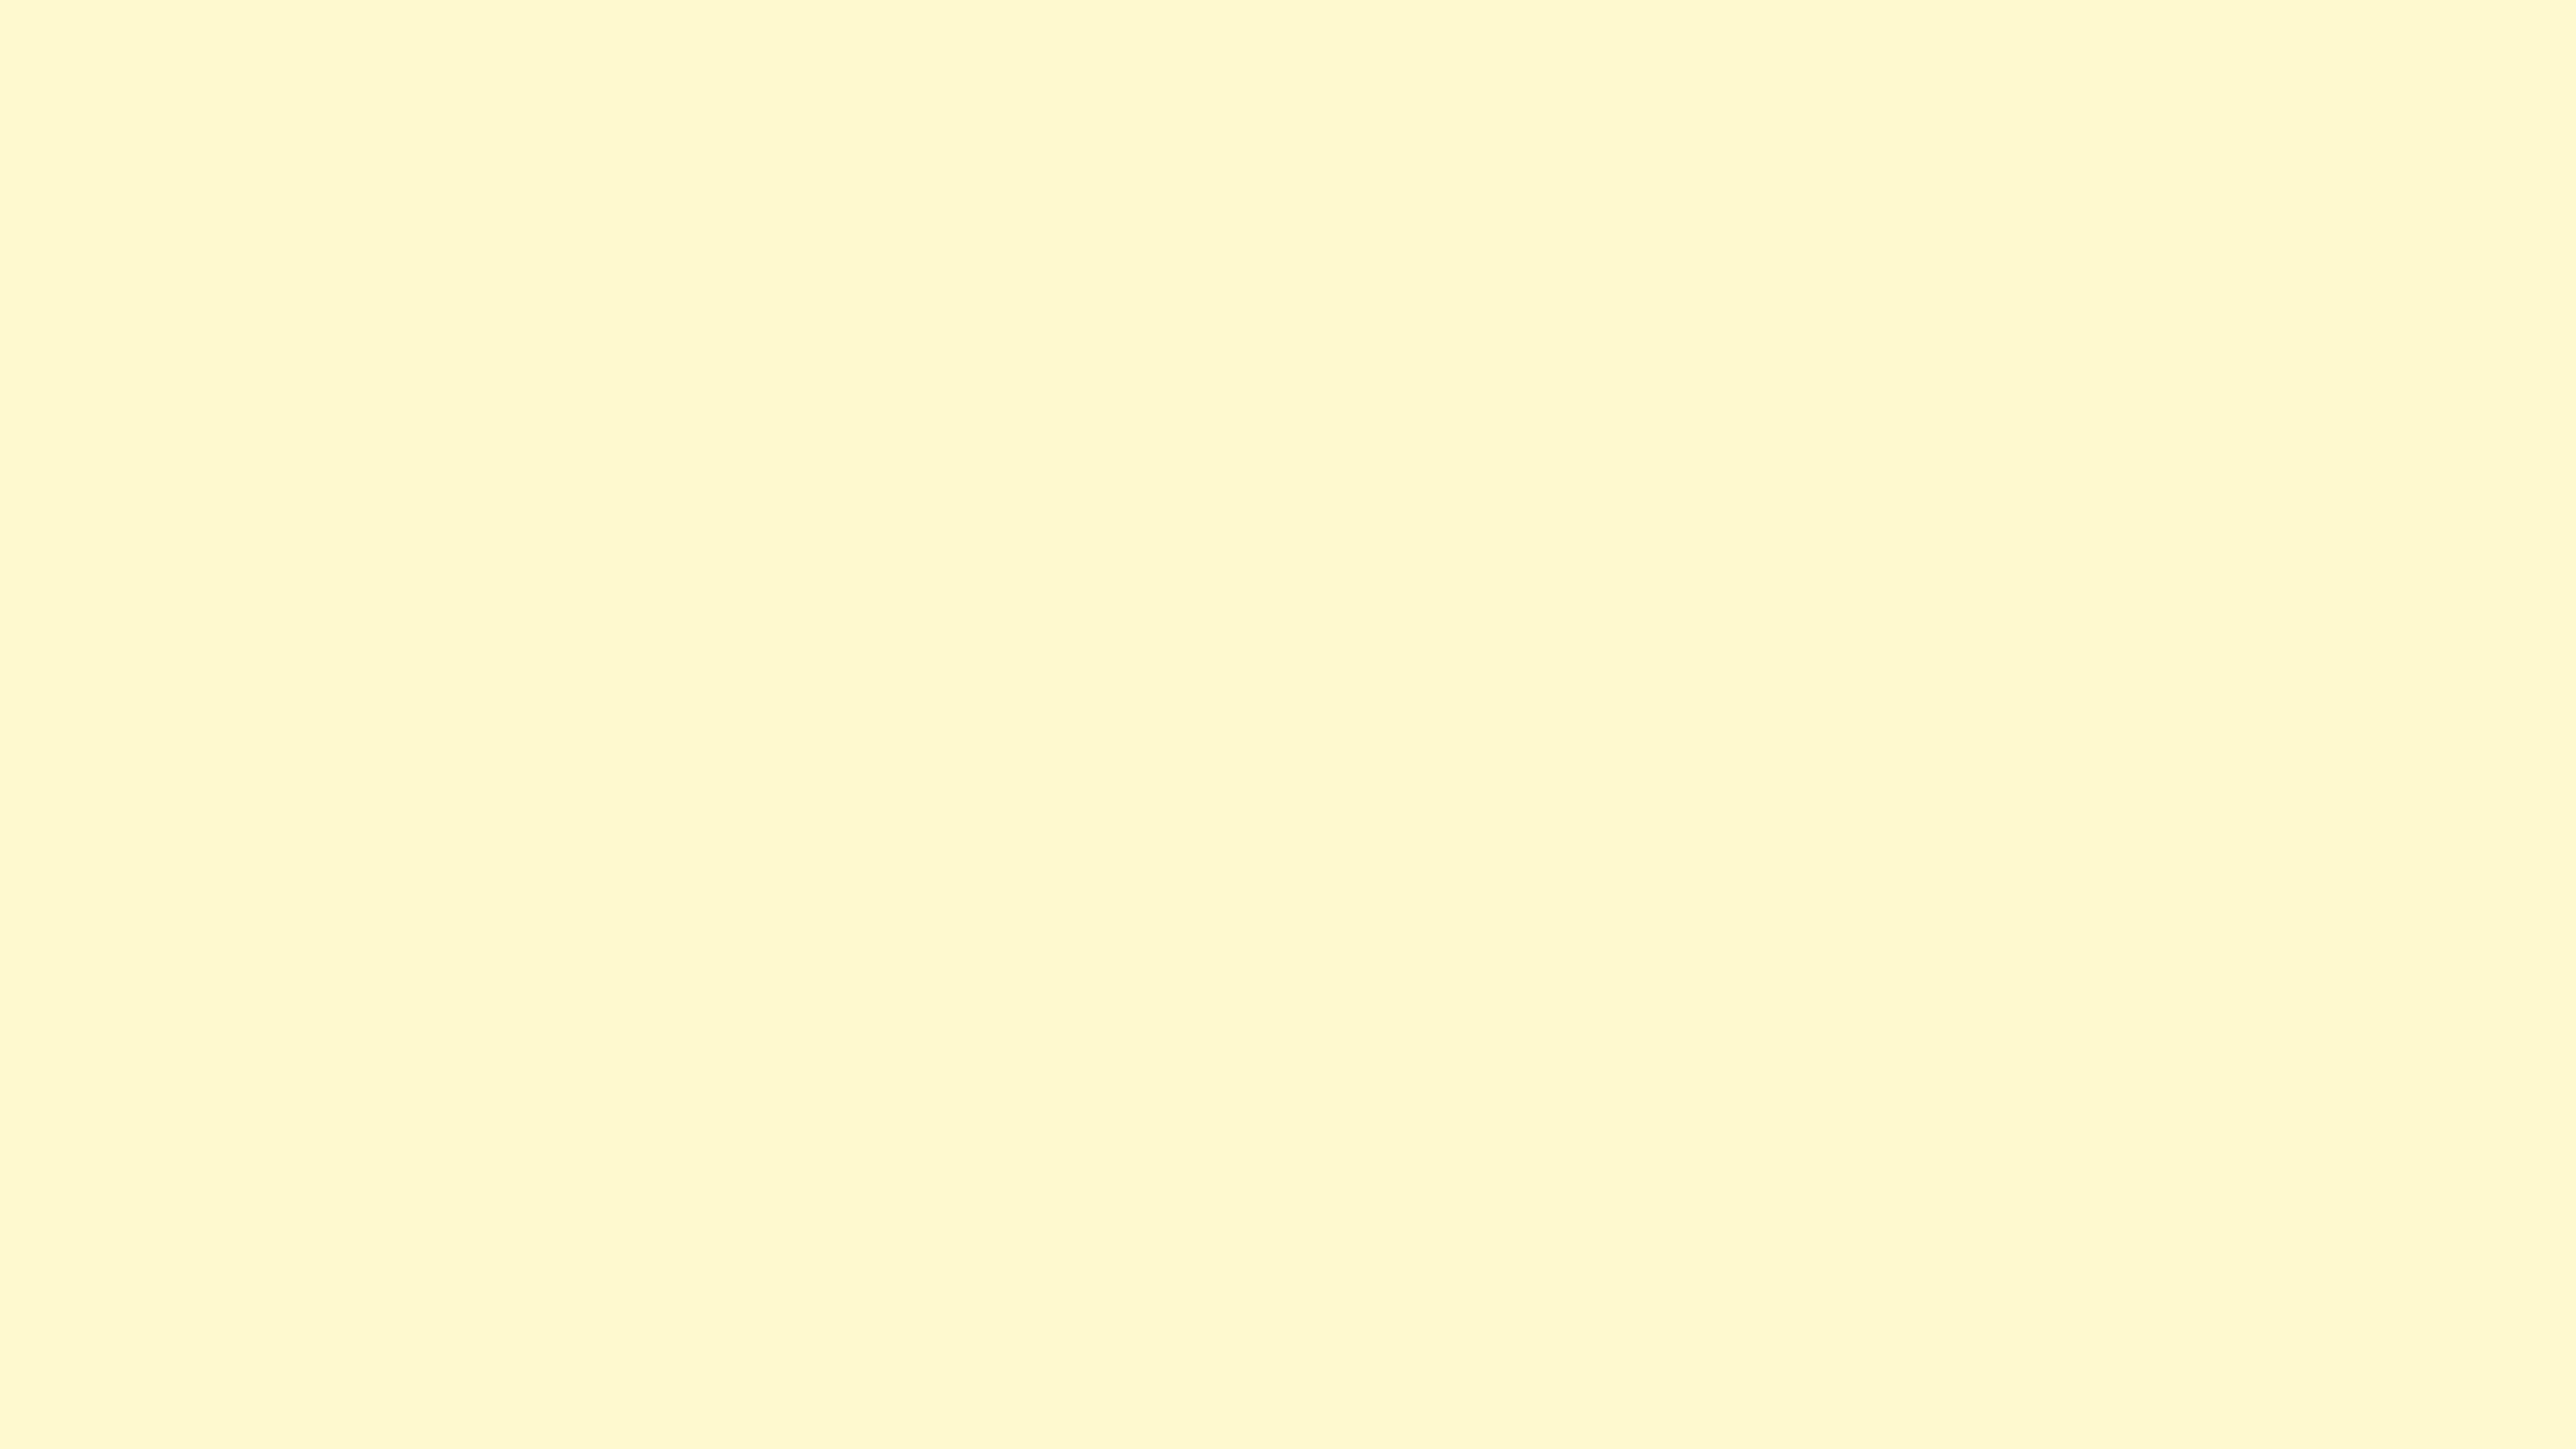 3840x2160 Lemon Chiffon Solid Color Background